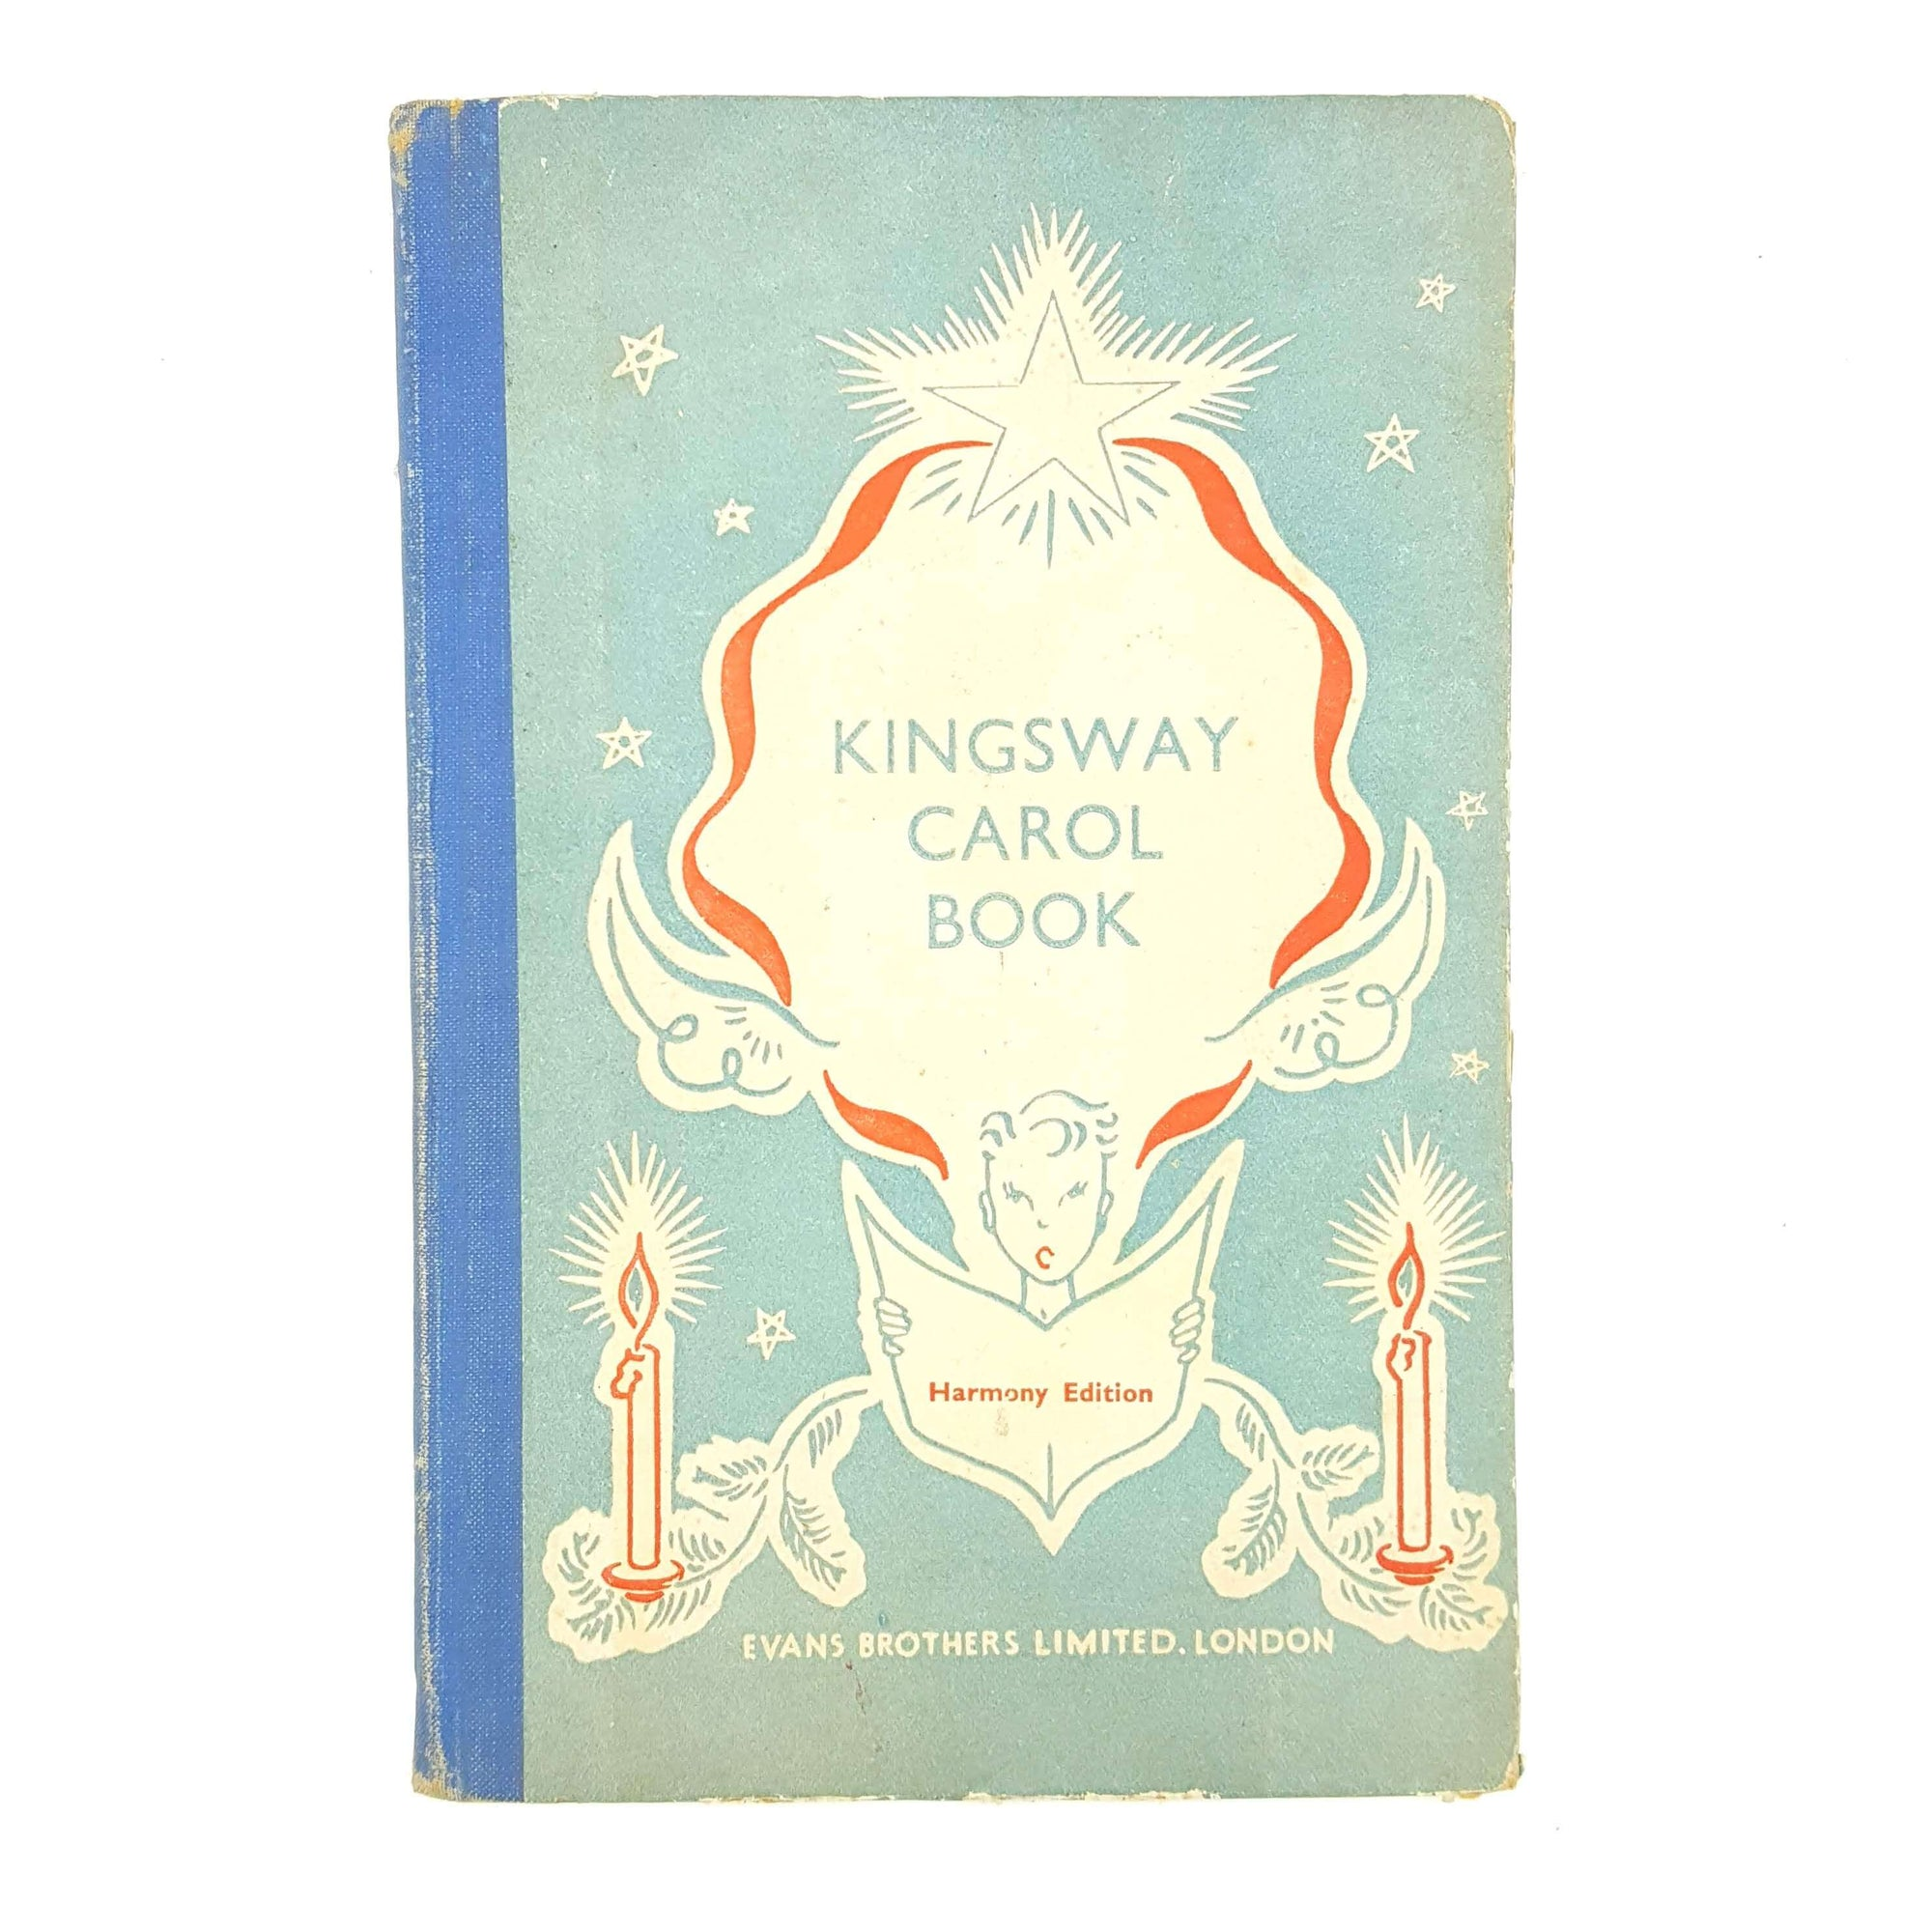 Kingsway Carol Book by Leslie Russell Country House Library